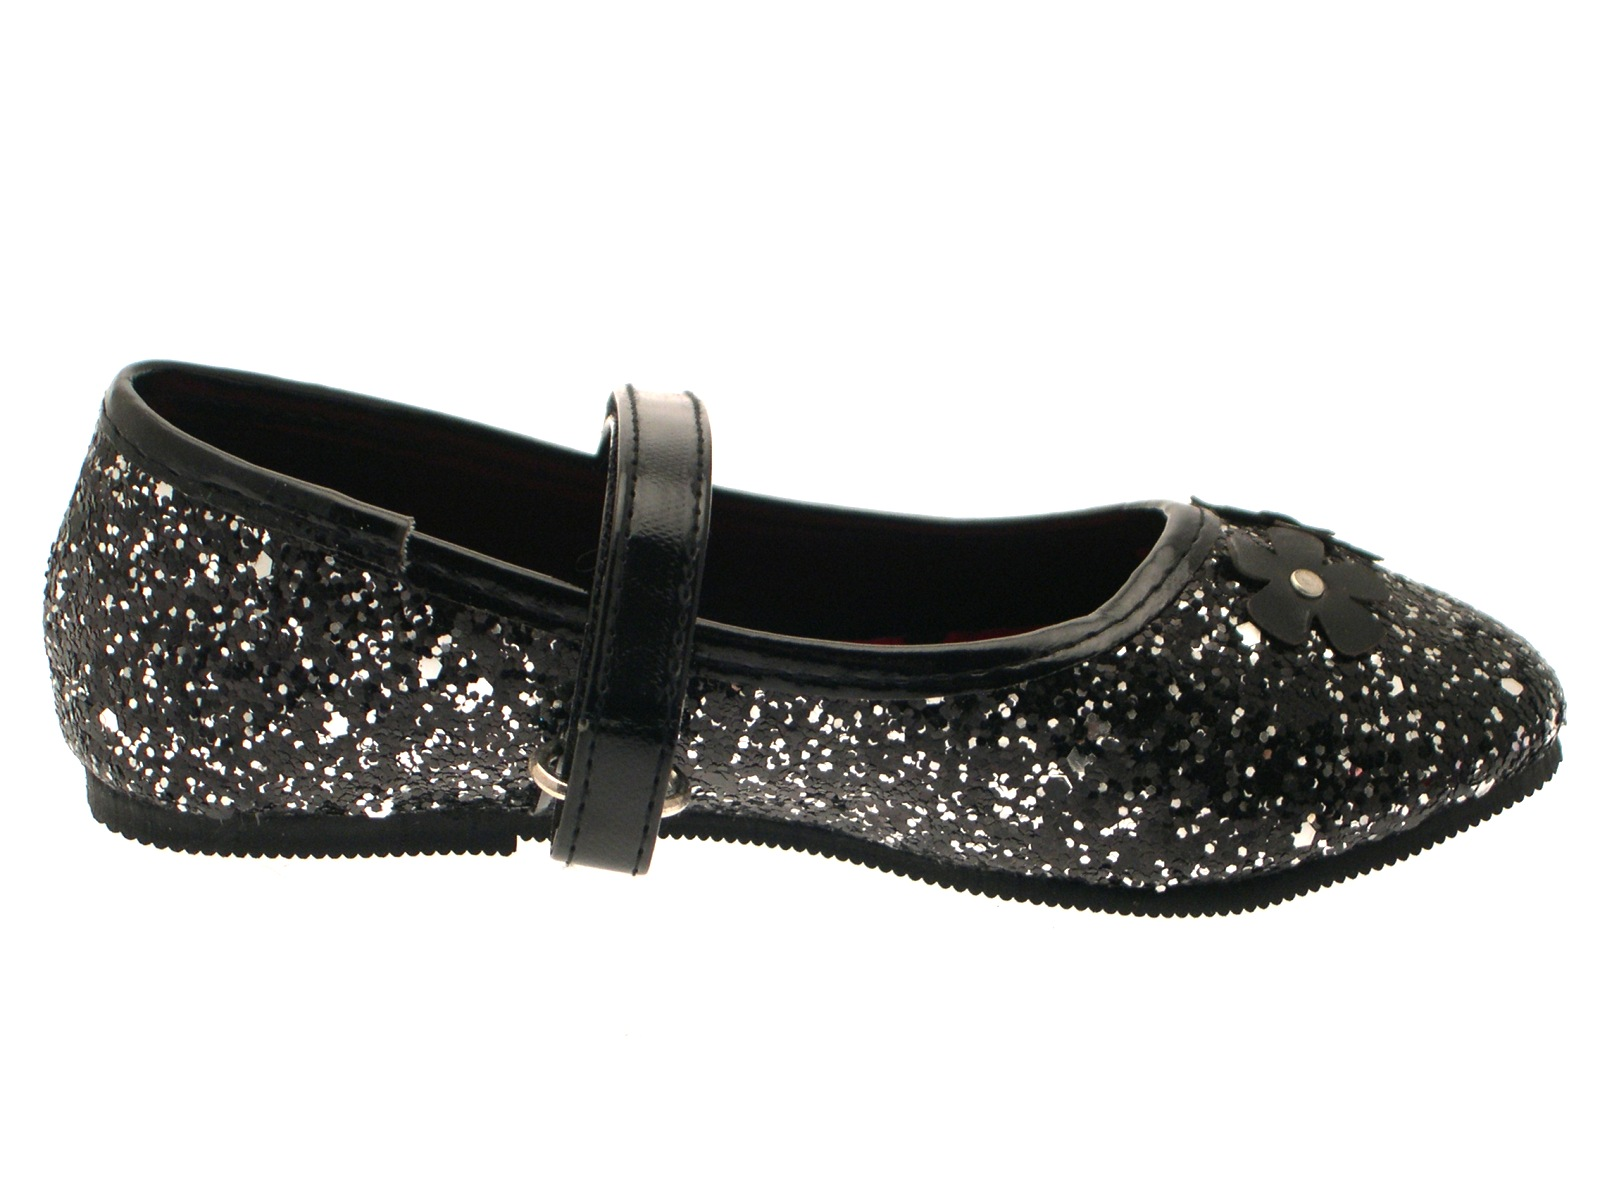 Childrens Sparkly Shoes With Heels Size